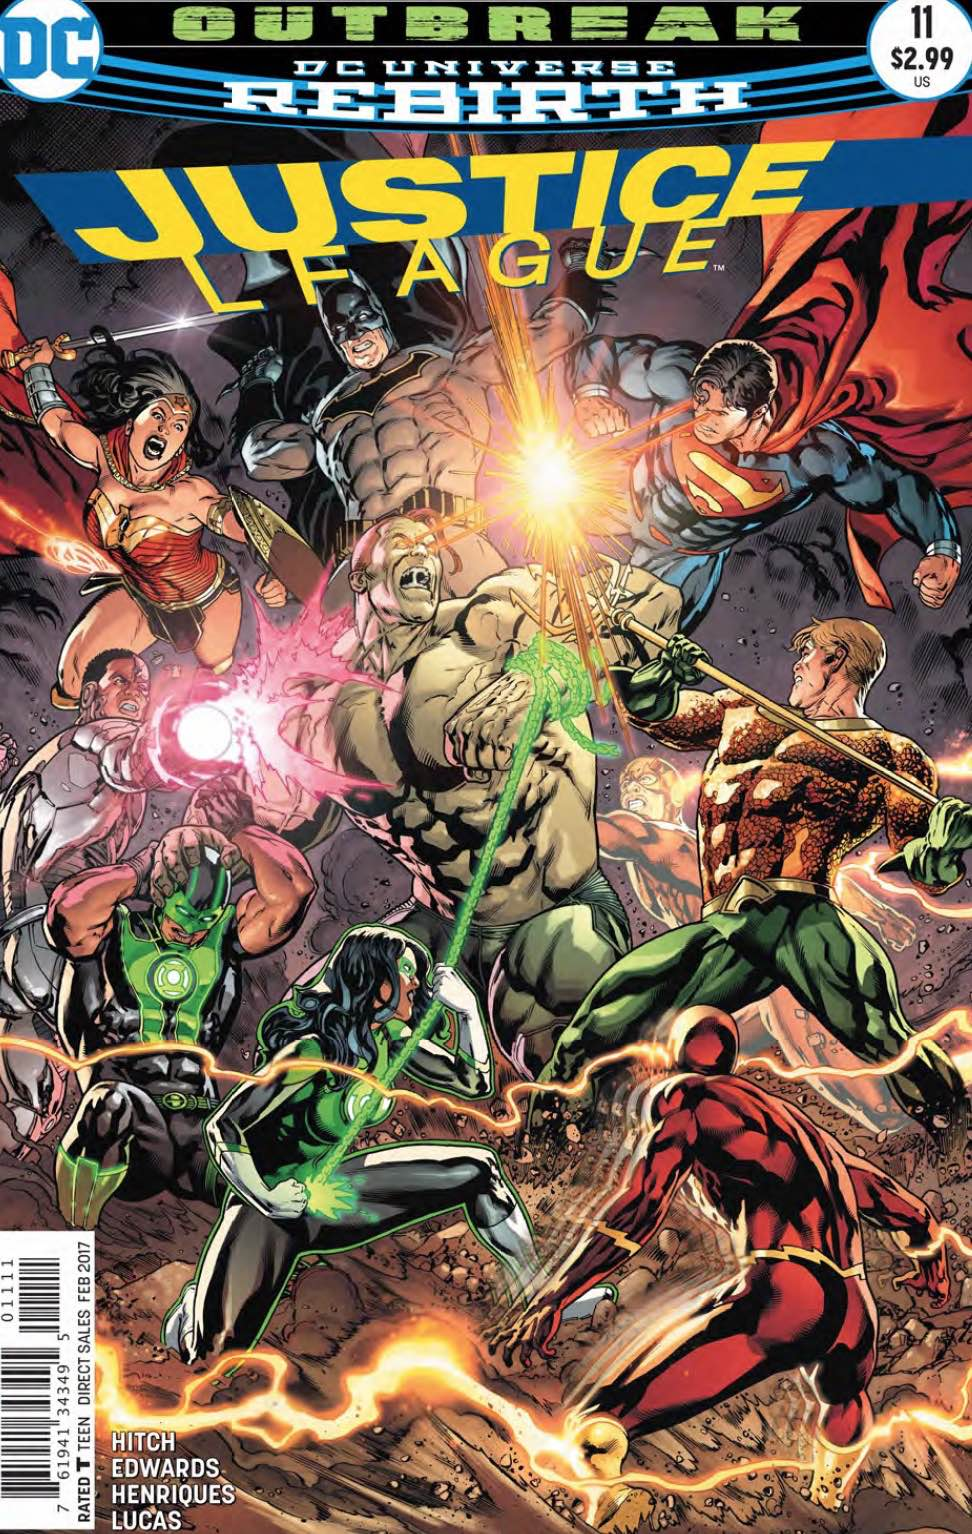 Justice League 11 - 11 - cover #1